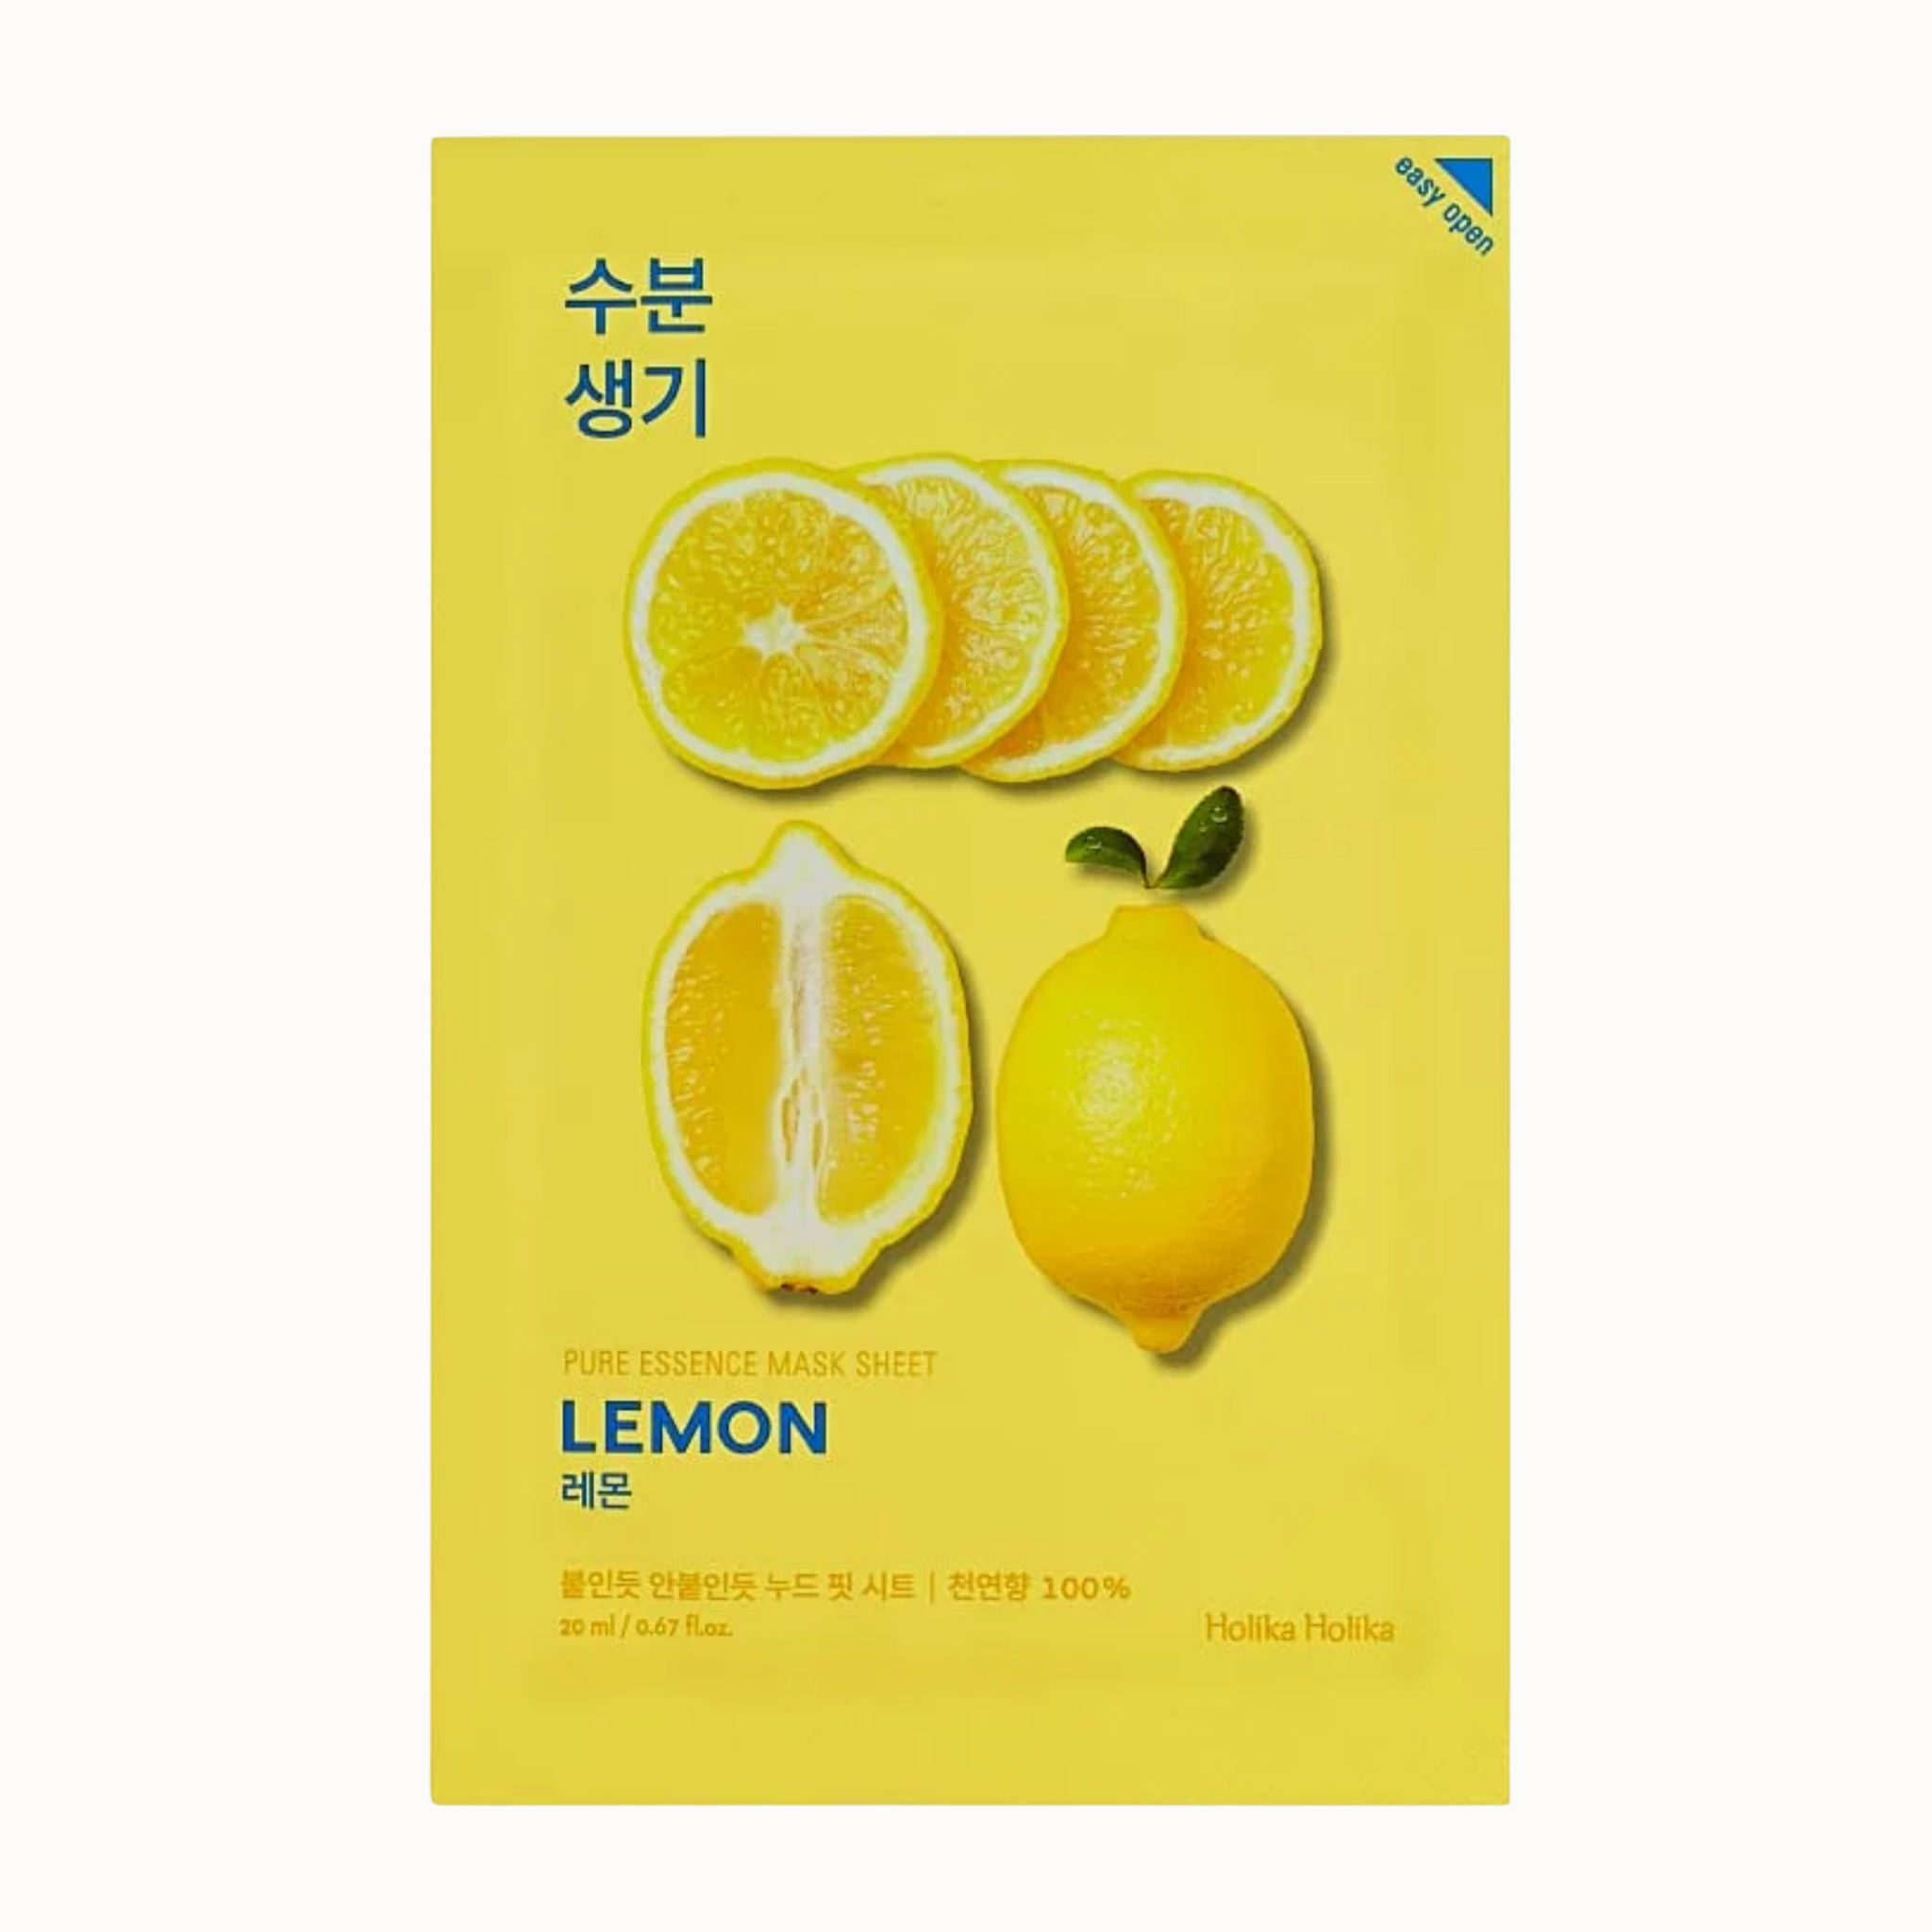 LEMON PURE ESSENCE MASK SHEET